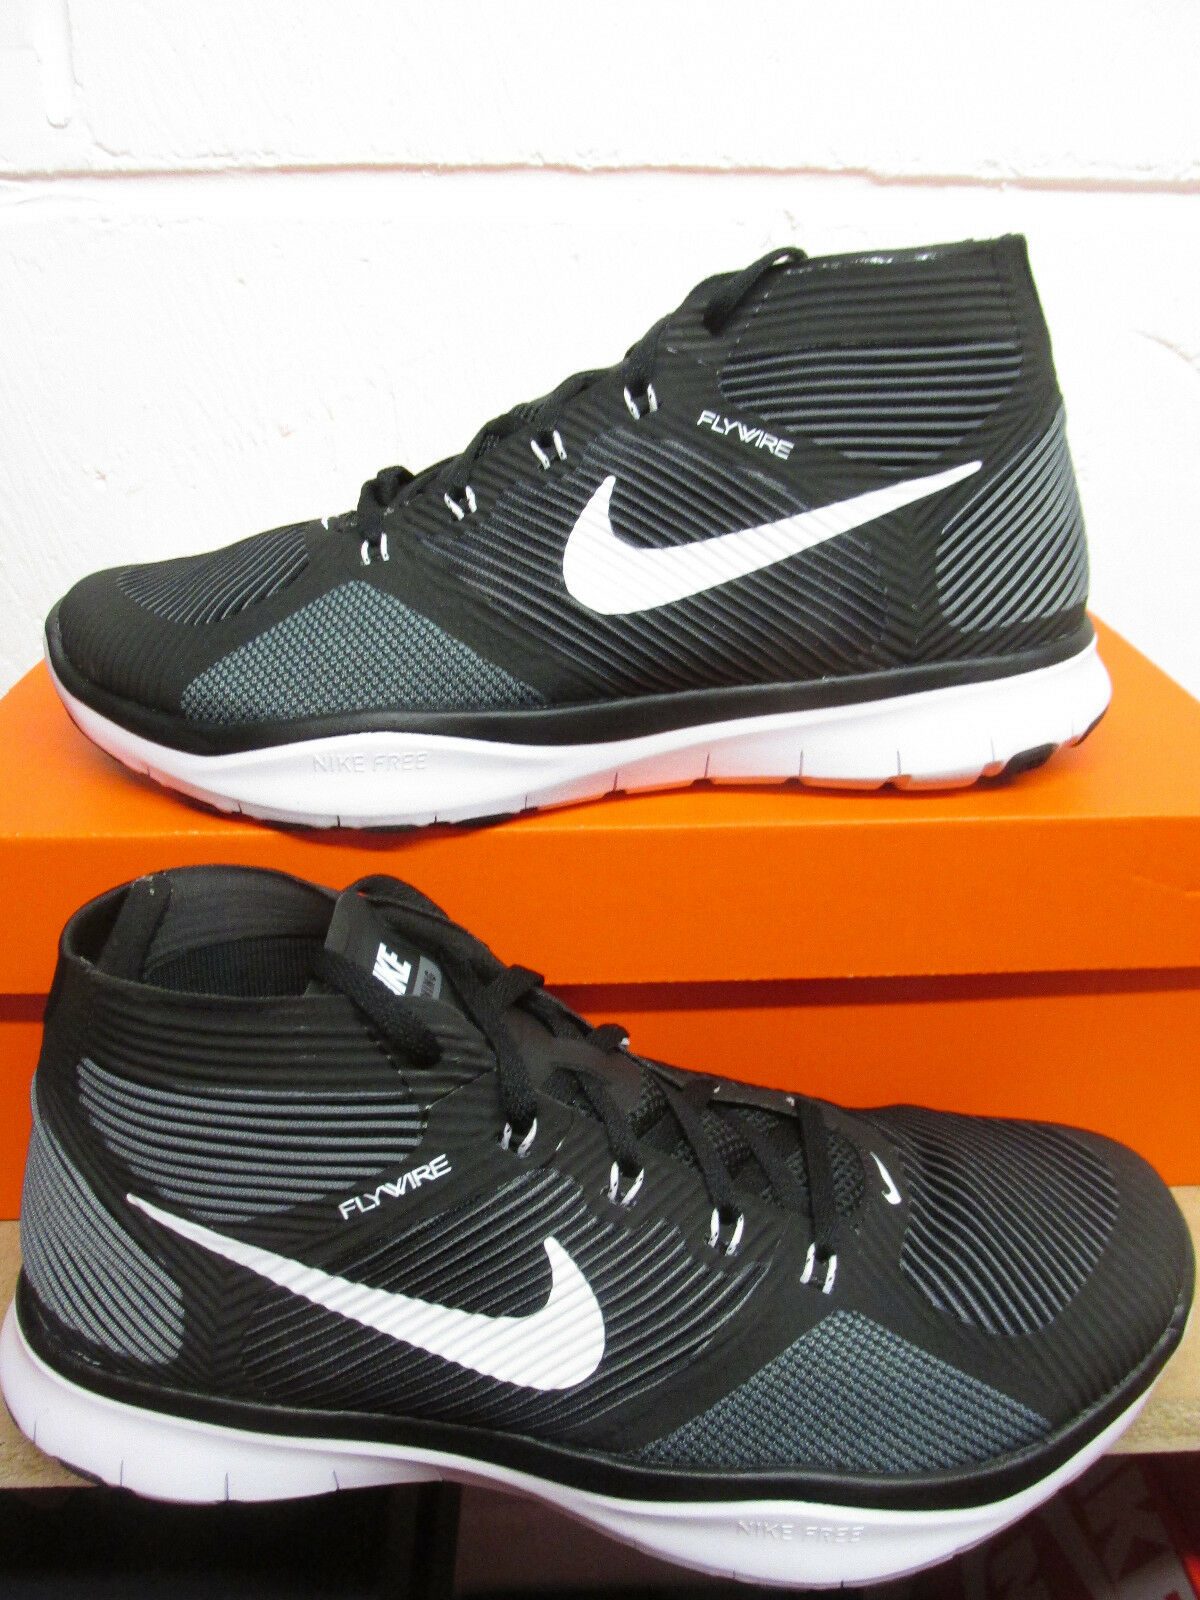 Nike Free Train Instinct Mens Running Trainers 833274 010 Sneakers shoes